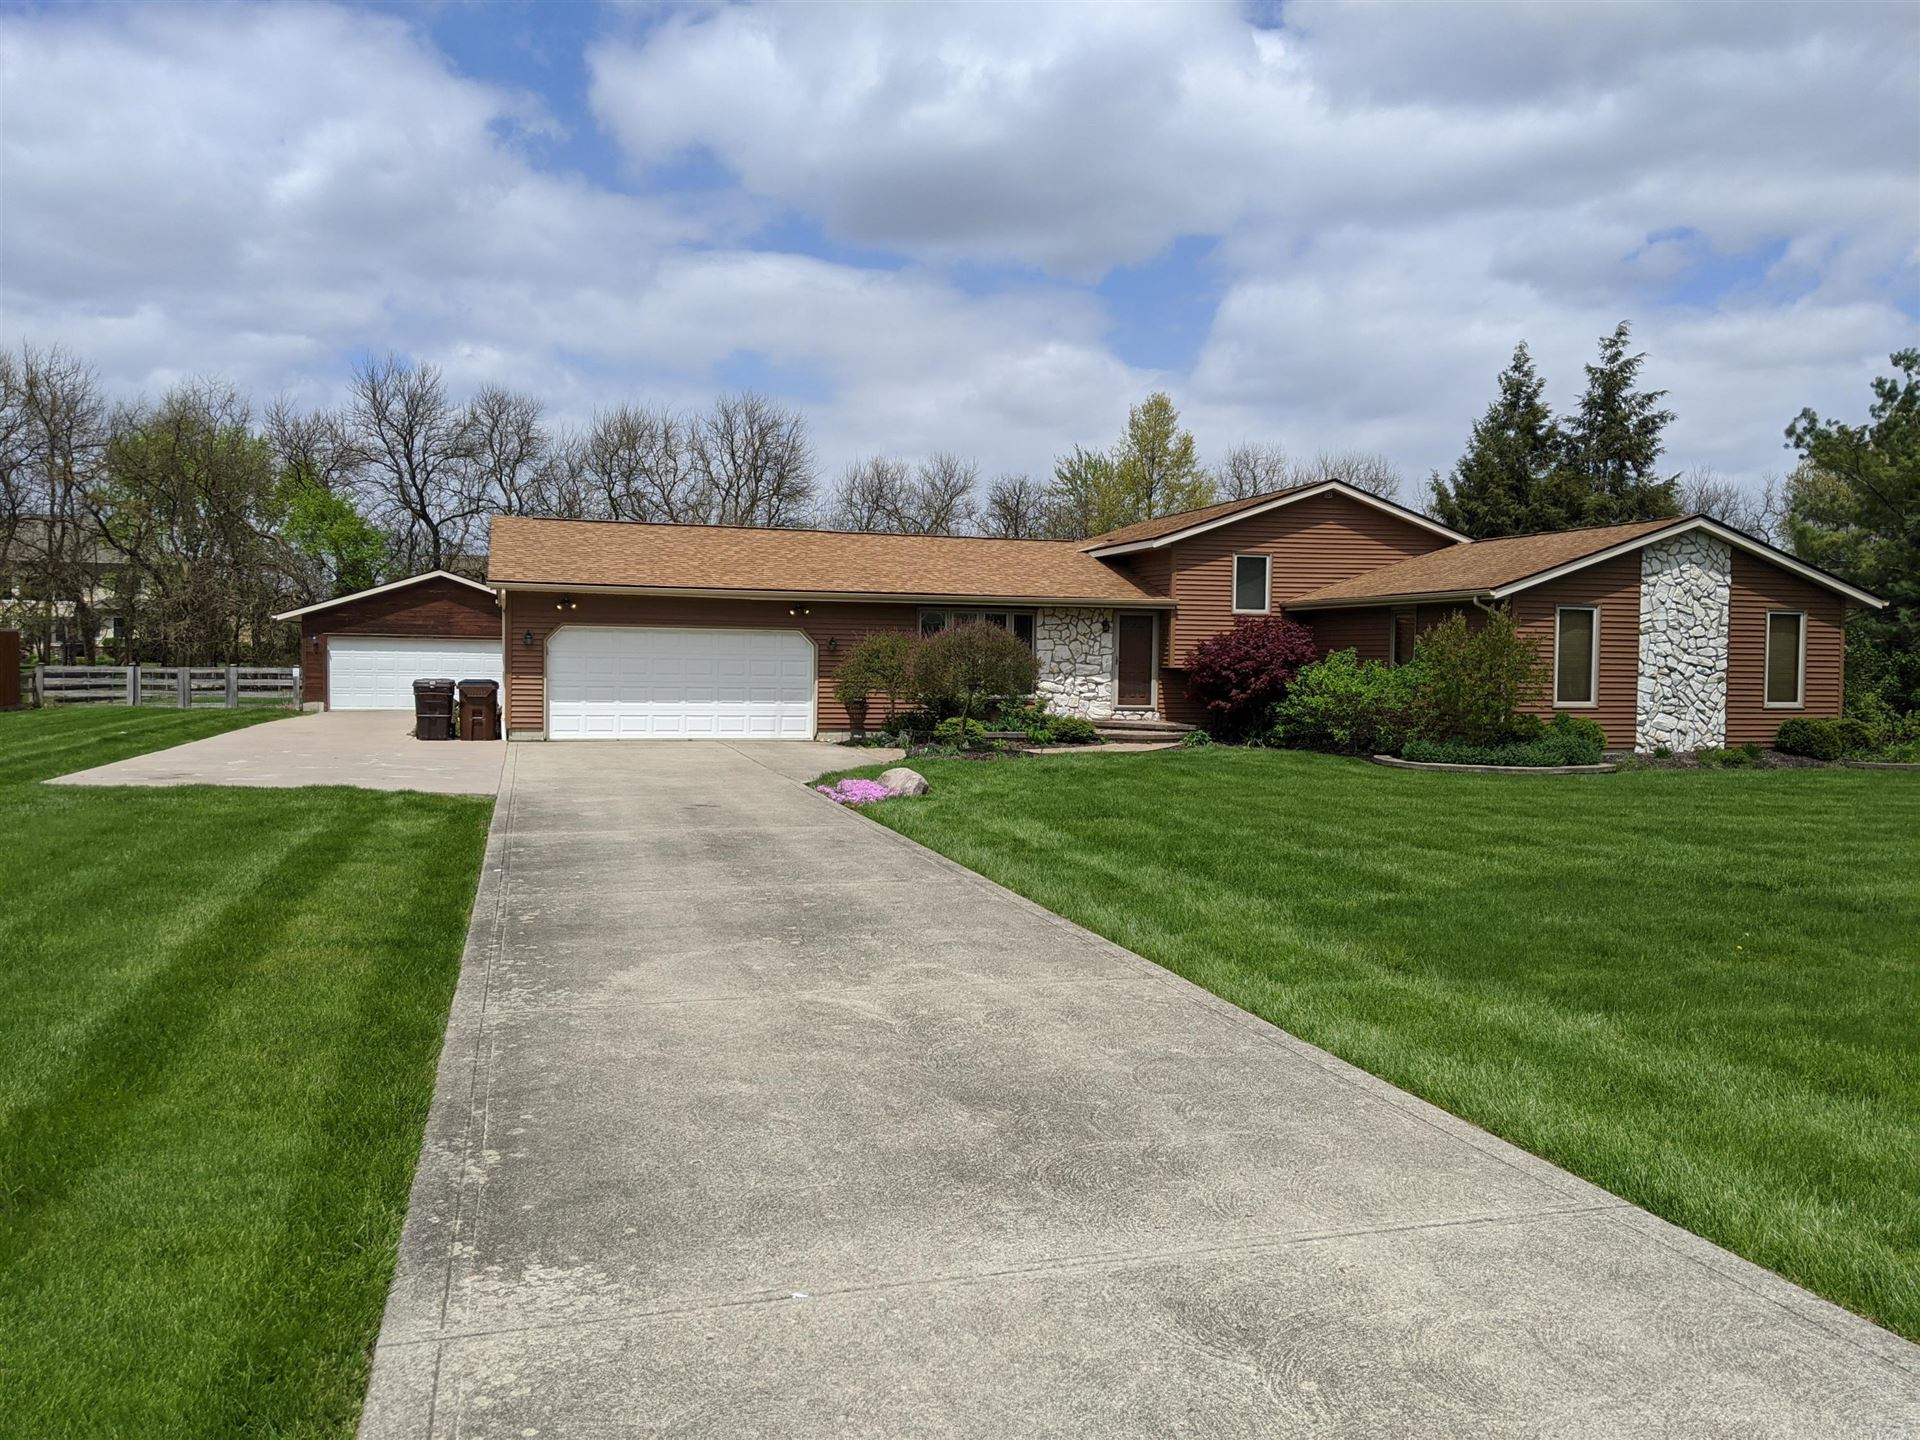 7511 Lanetta Lane, Westerville, OH 43082 - MLS#: 220018139